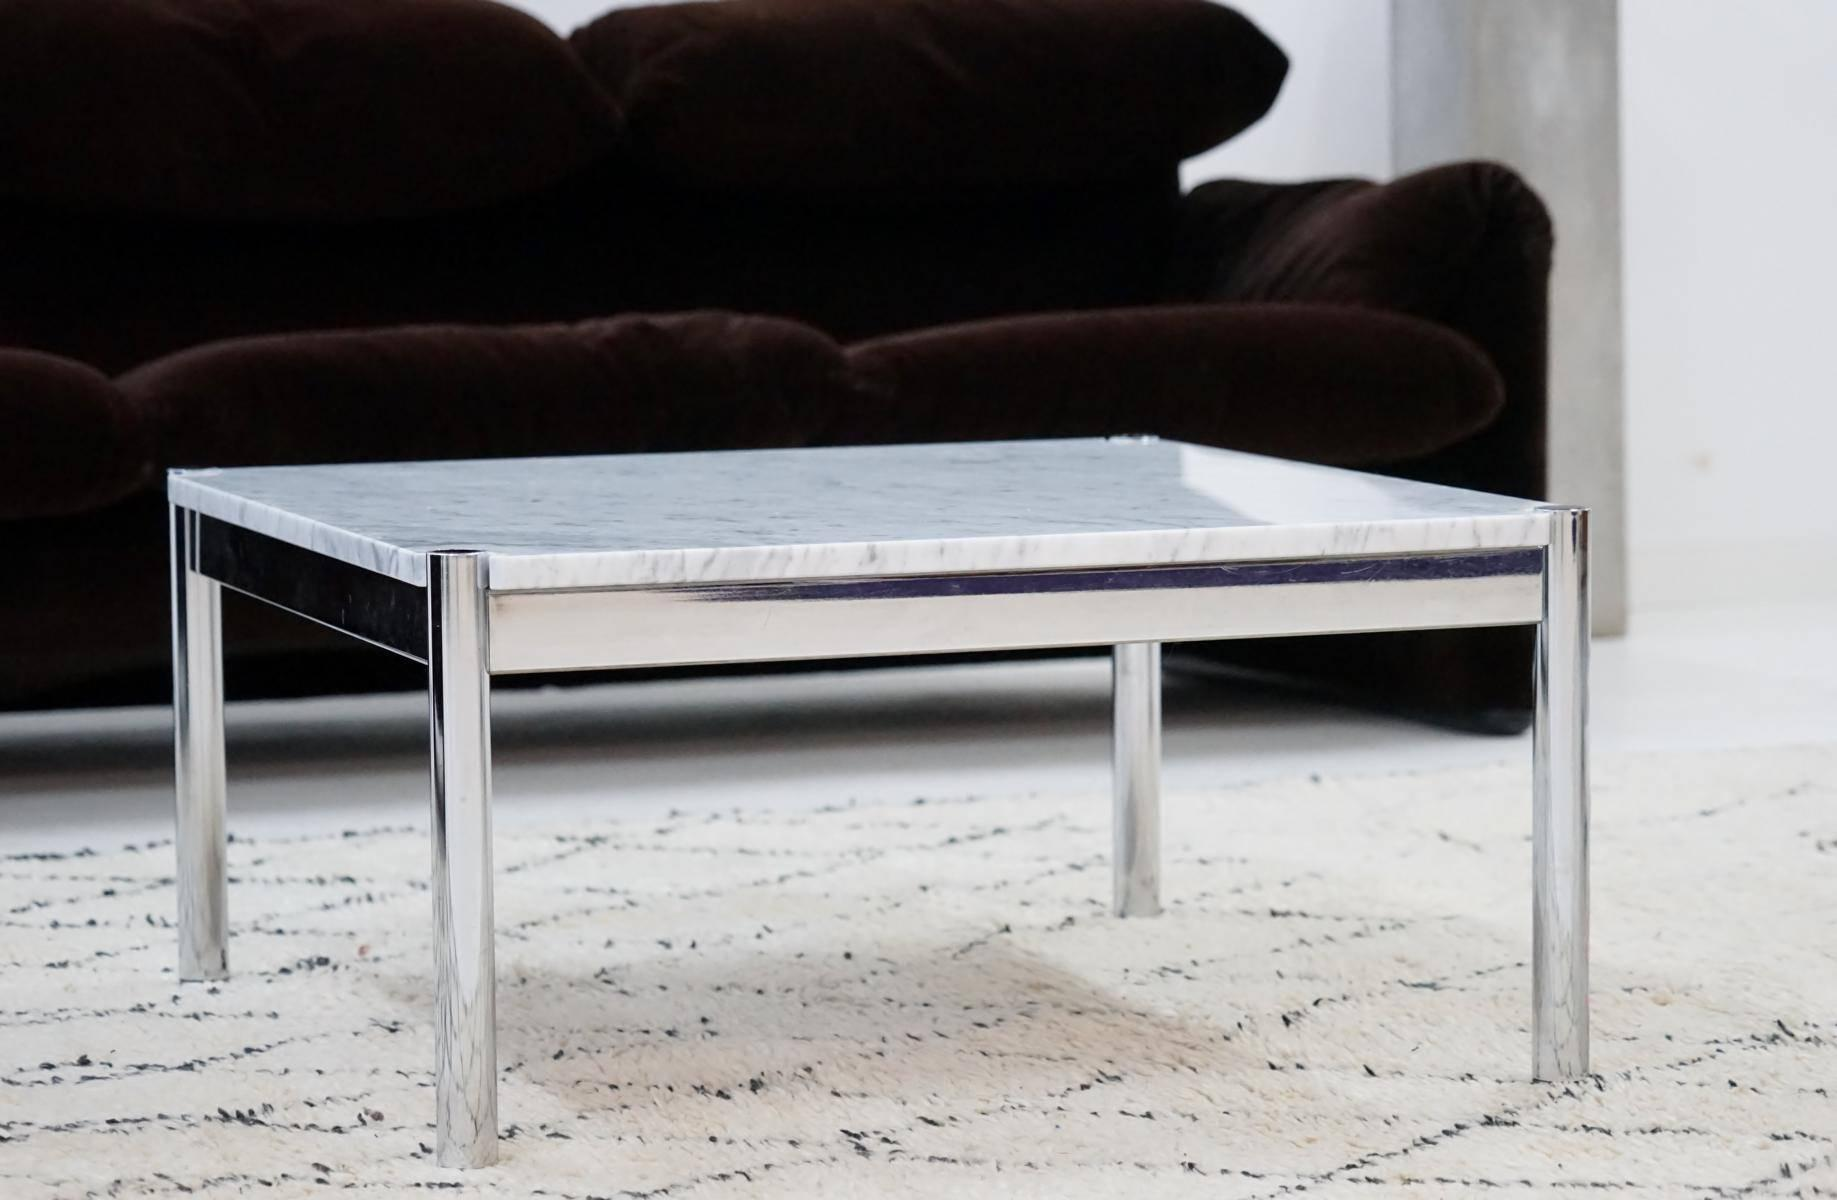 Usm Haller Couchtisch Usm Haller Design Carrara Marble Chrome Coffee Couch Sofa Side Table